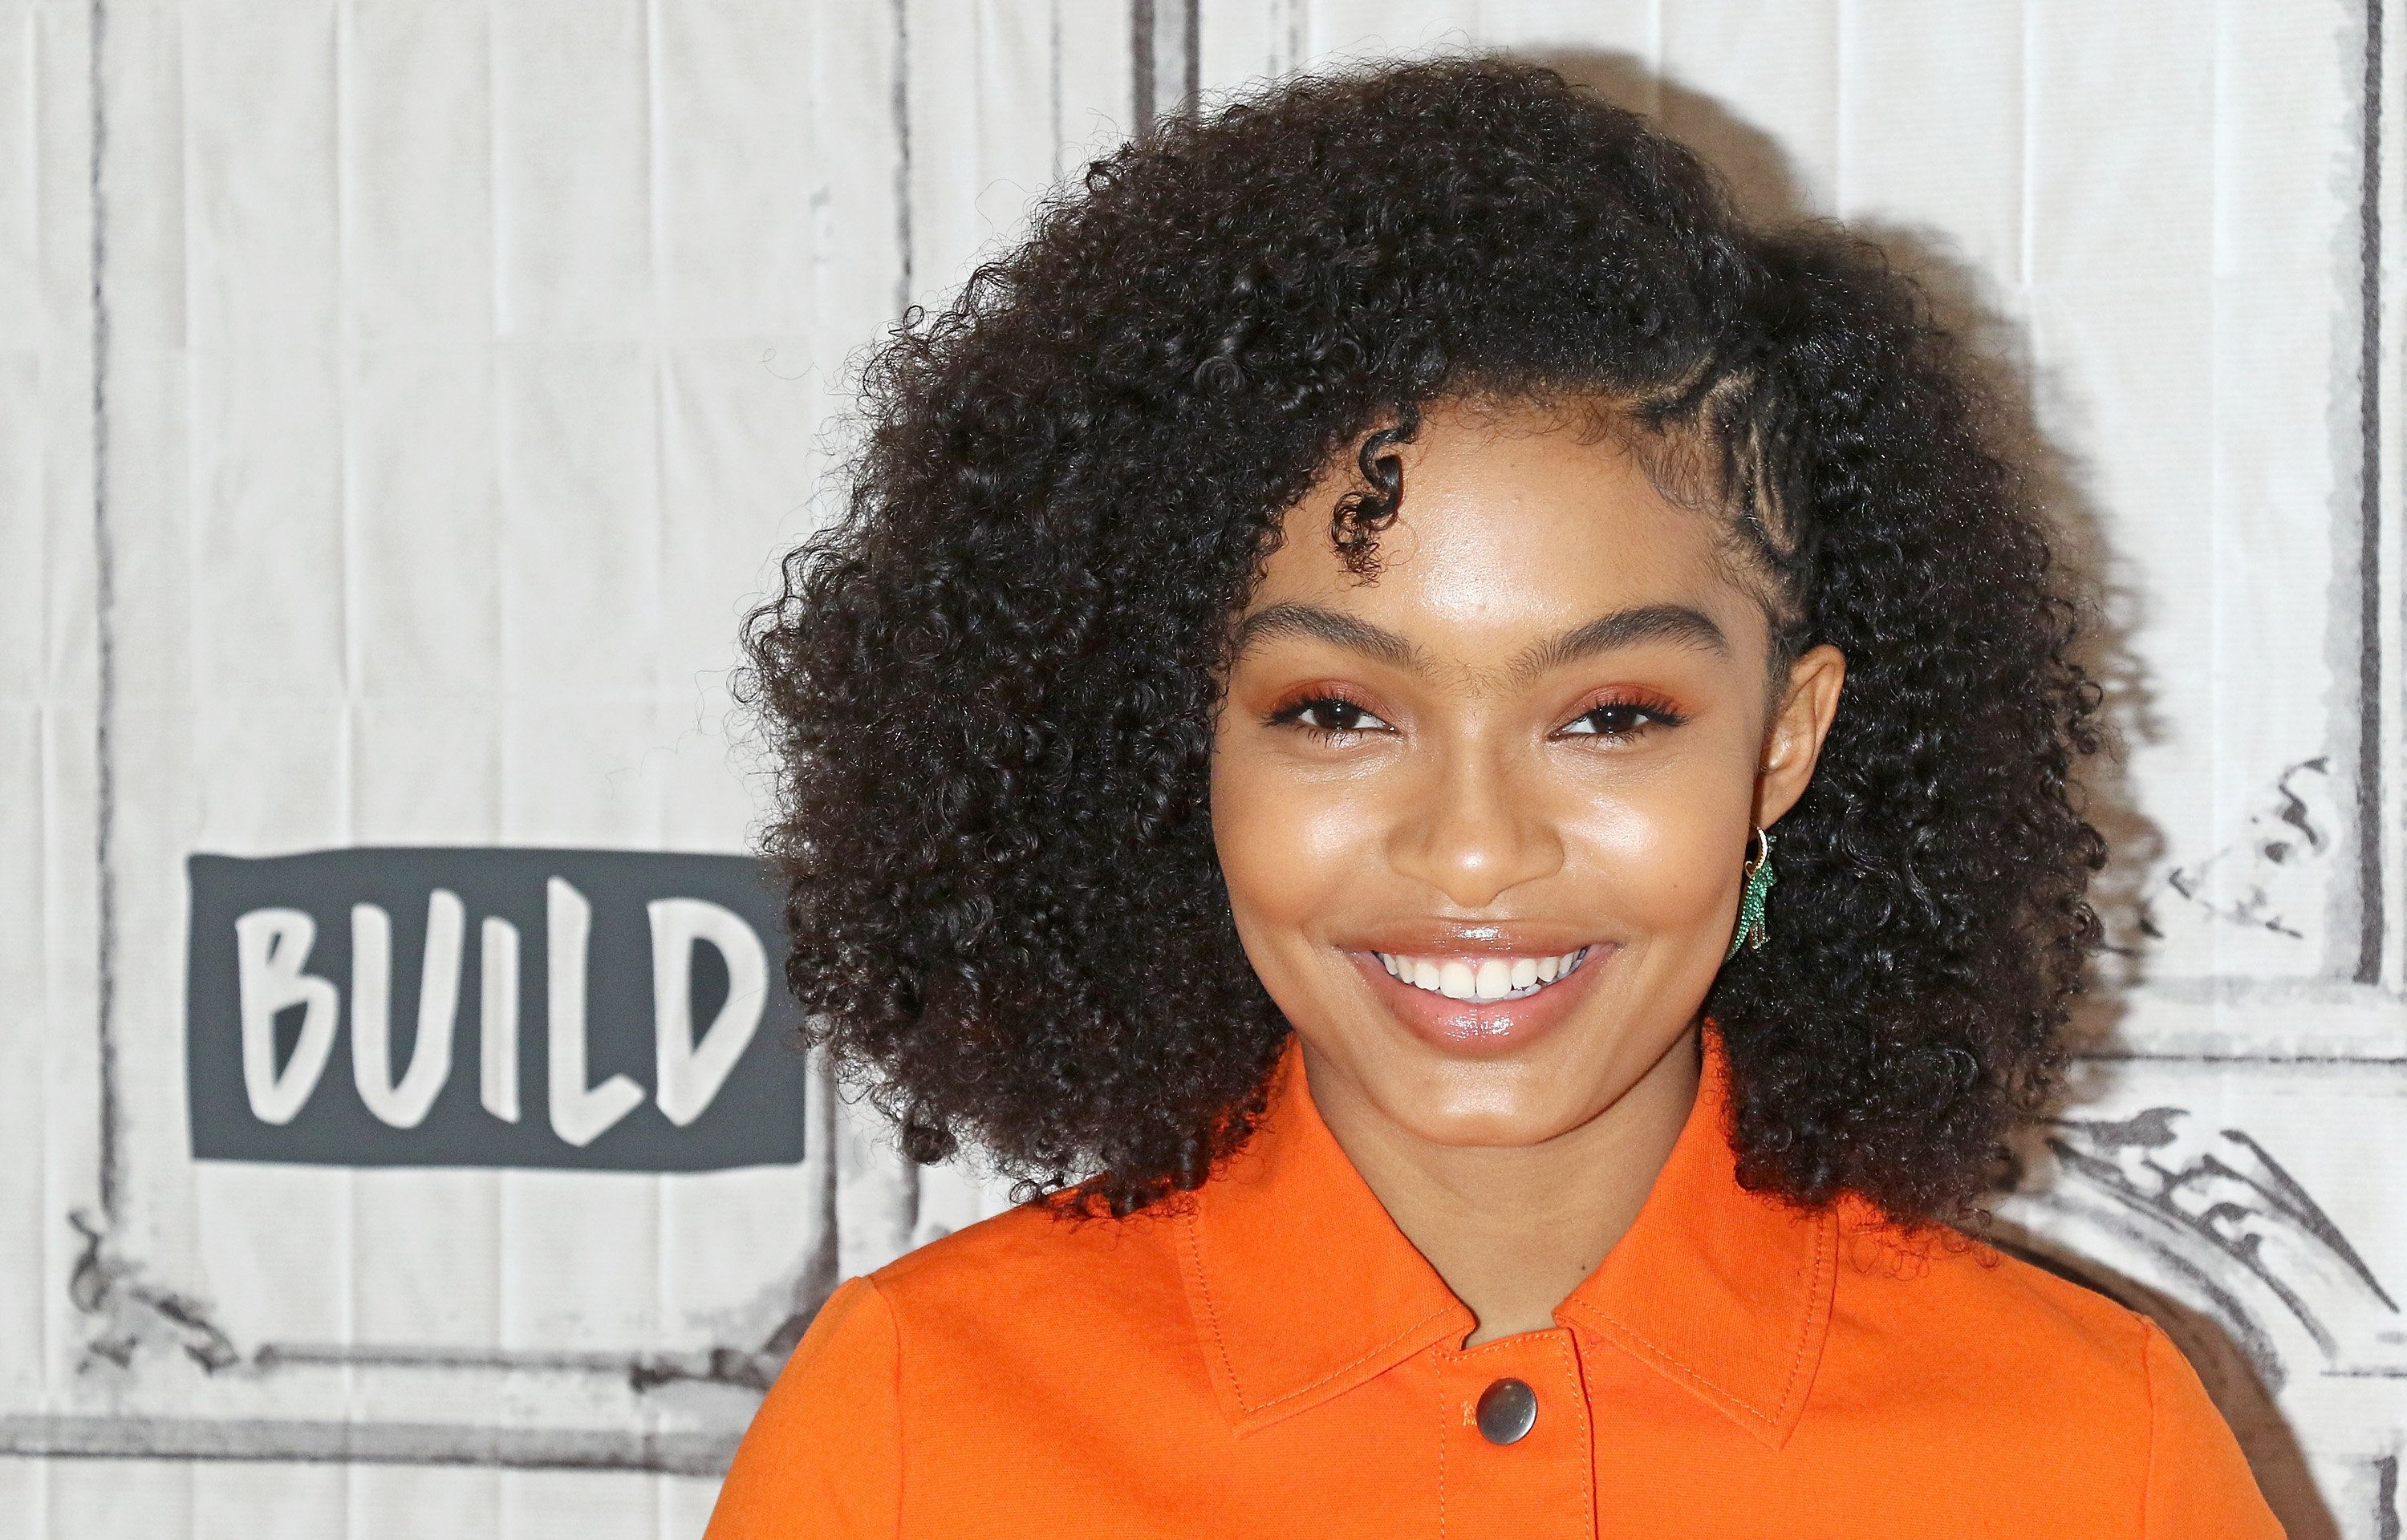 NEW YORK, NY - FEBRUARY 06:  Actress Yara Shahidi attends the Build Series to discuss 'Grown-ish' at Build Studio on February 6, 2018 in New York City.  (Photo by Jim Spellman/WireImage)